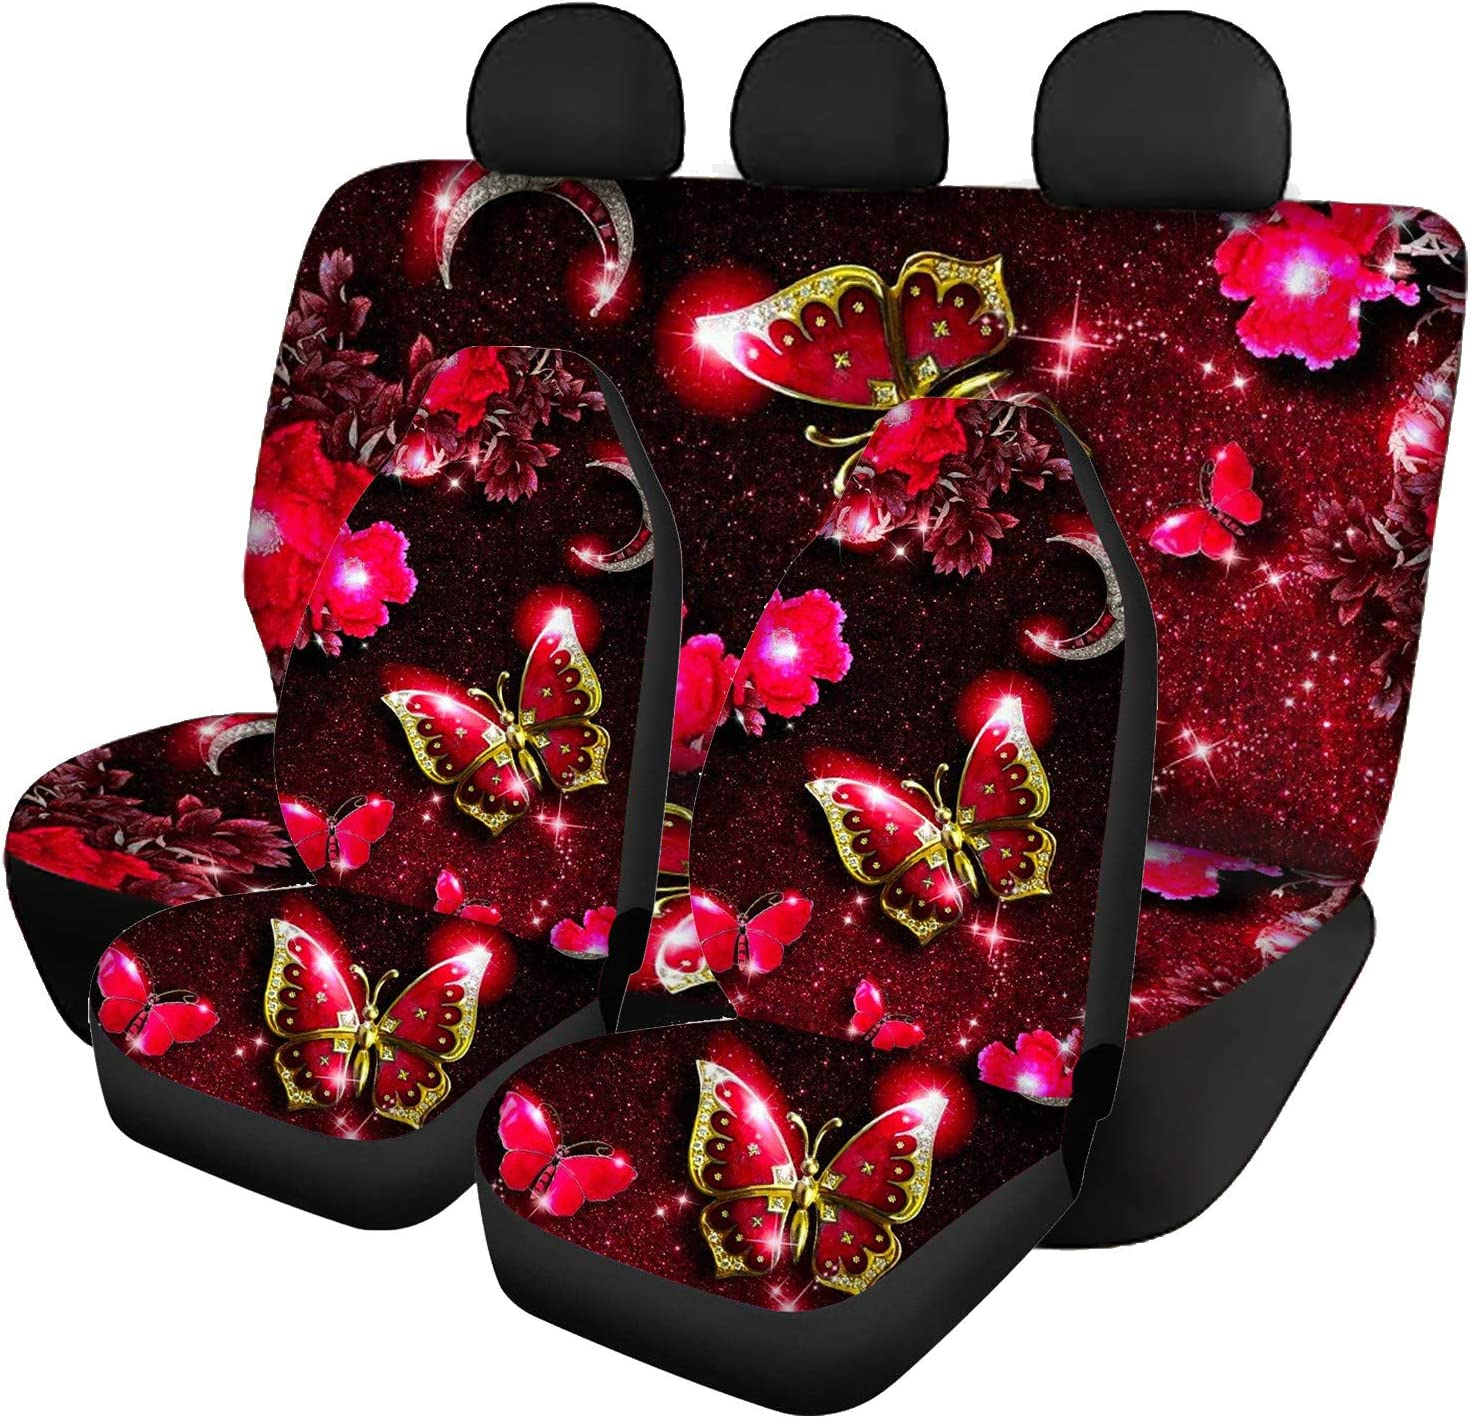 ZFRXIGN Red Great interest Crystal Butterfly Car Front Covers Spasm price Back Seats Seat C